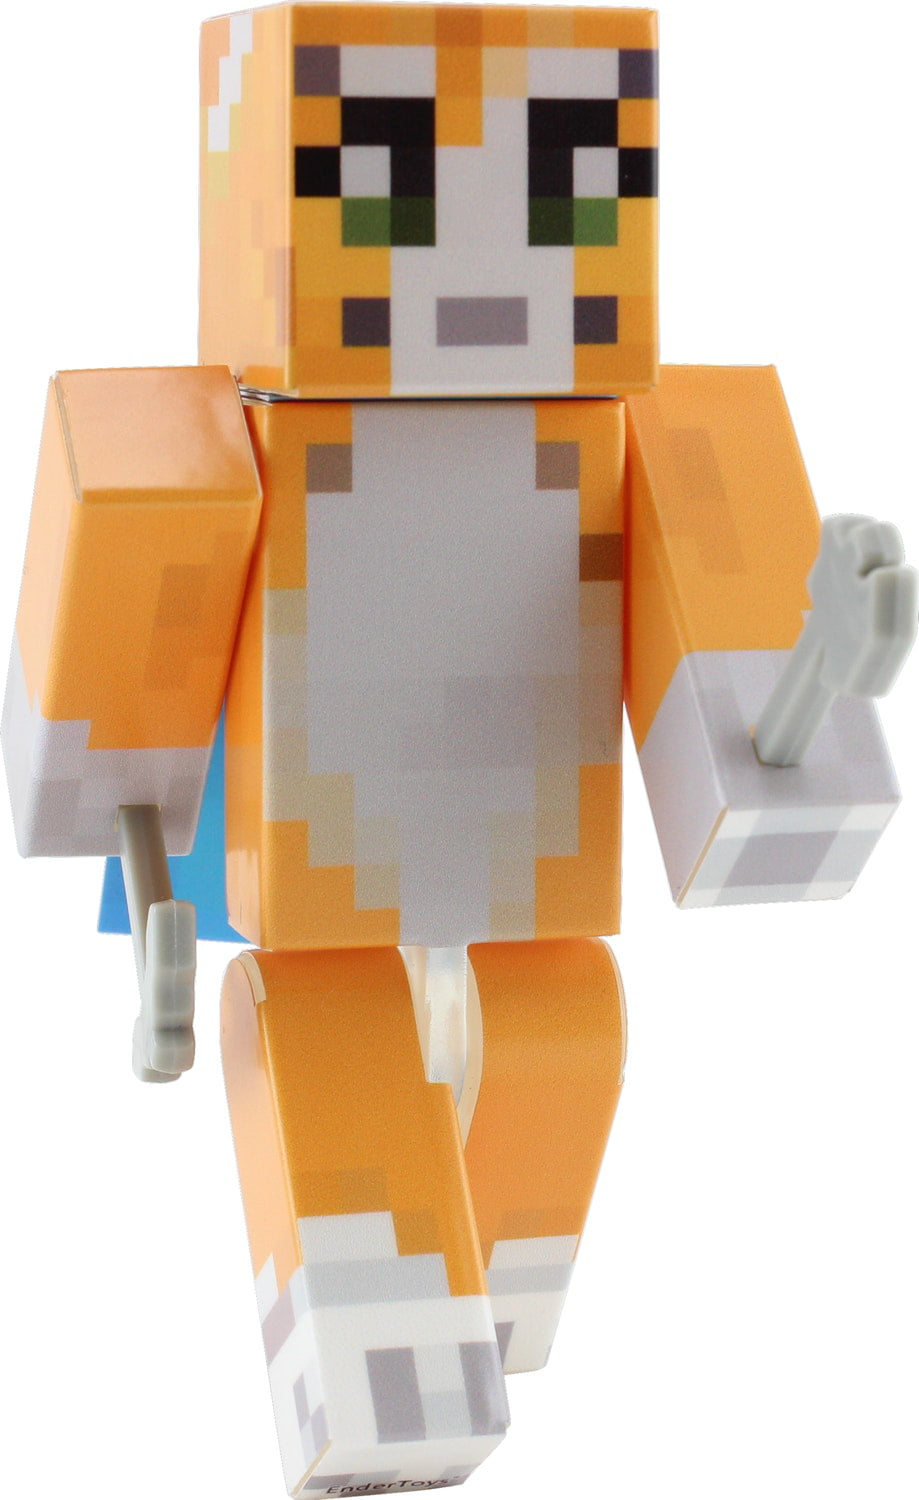 Orange Cat Action Figure Toy by EnderToys [Not an official Minecraft product] by Seus Corp Ltd.